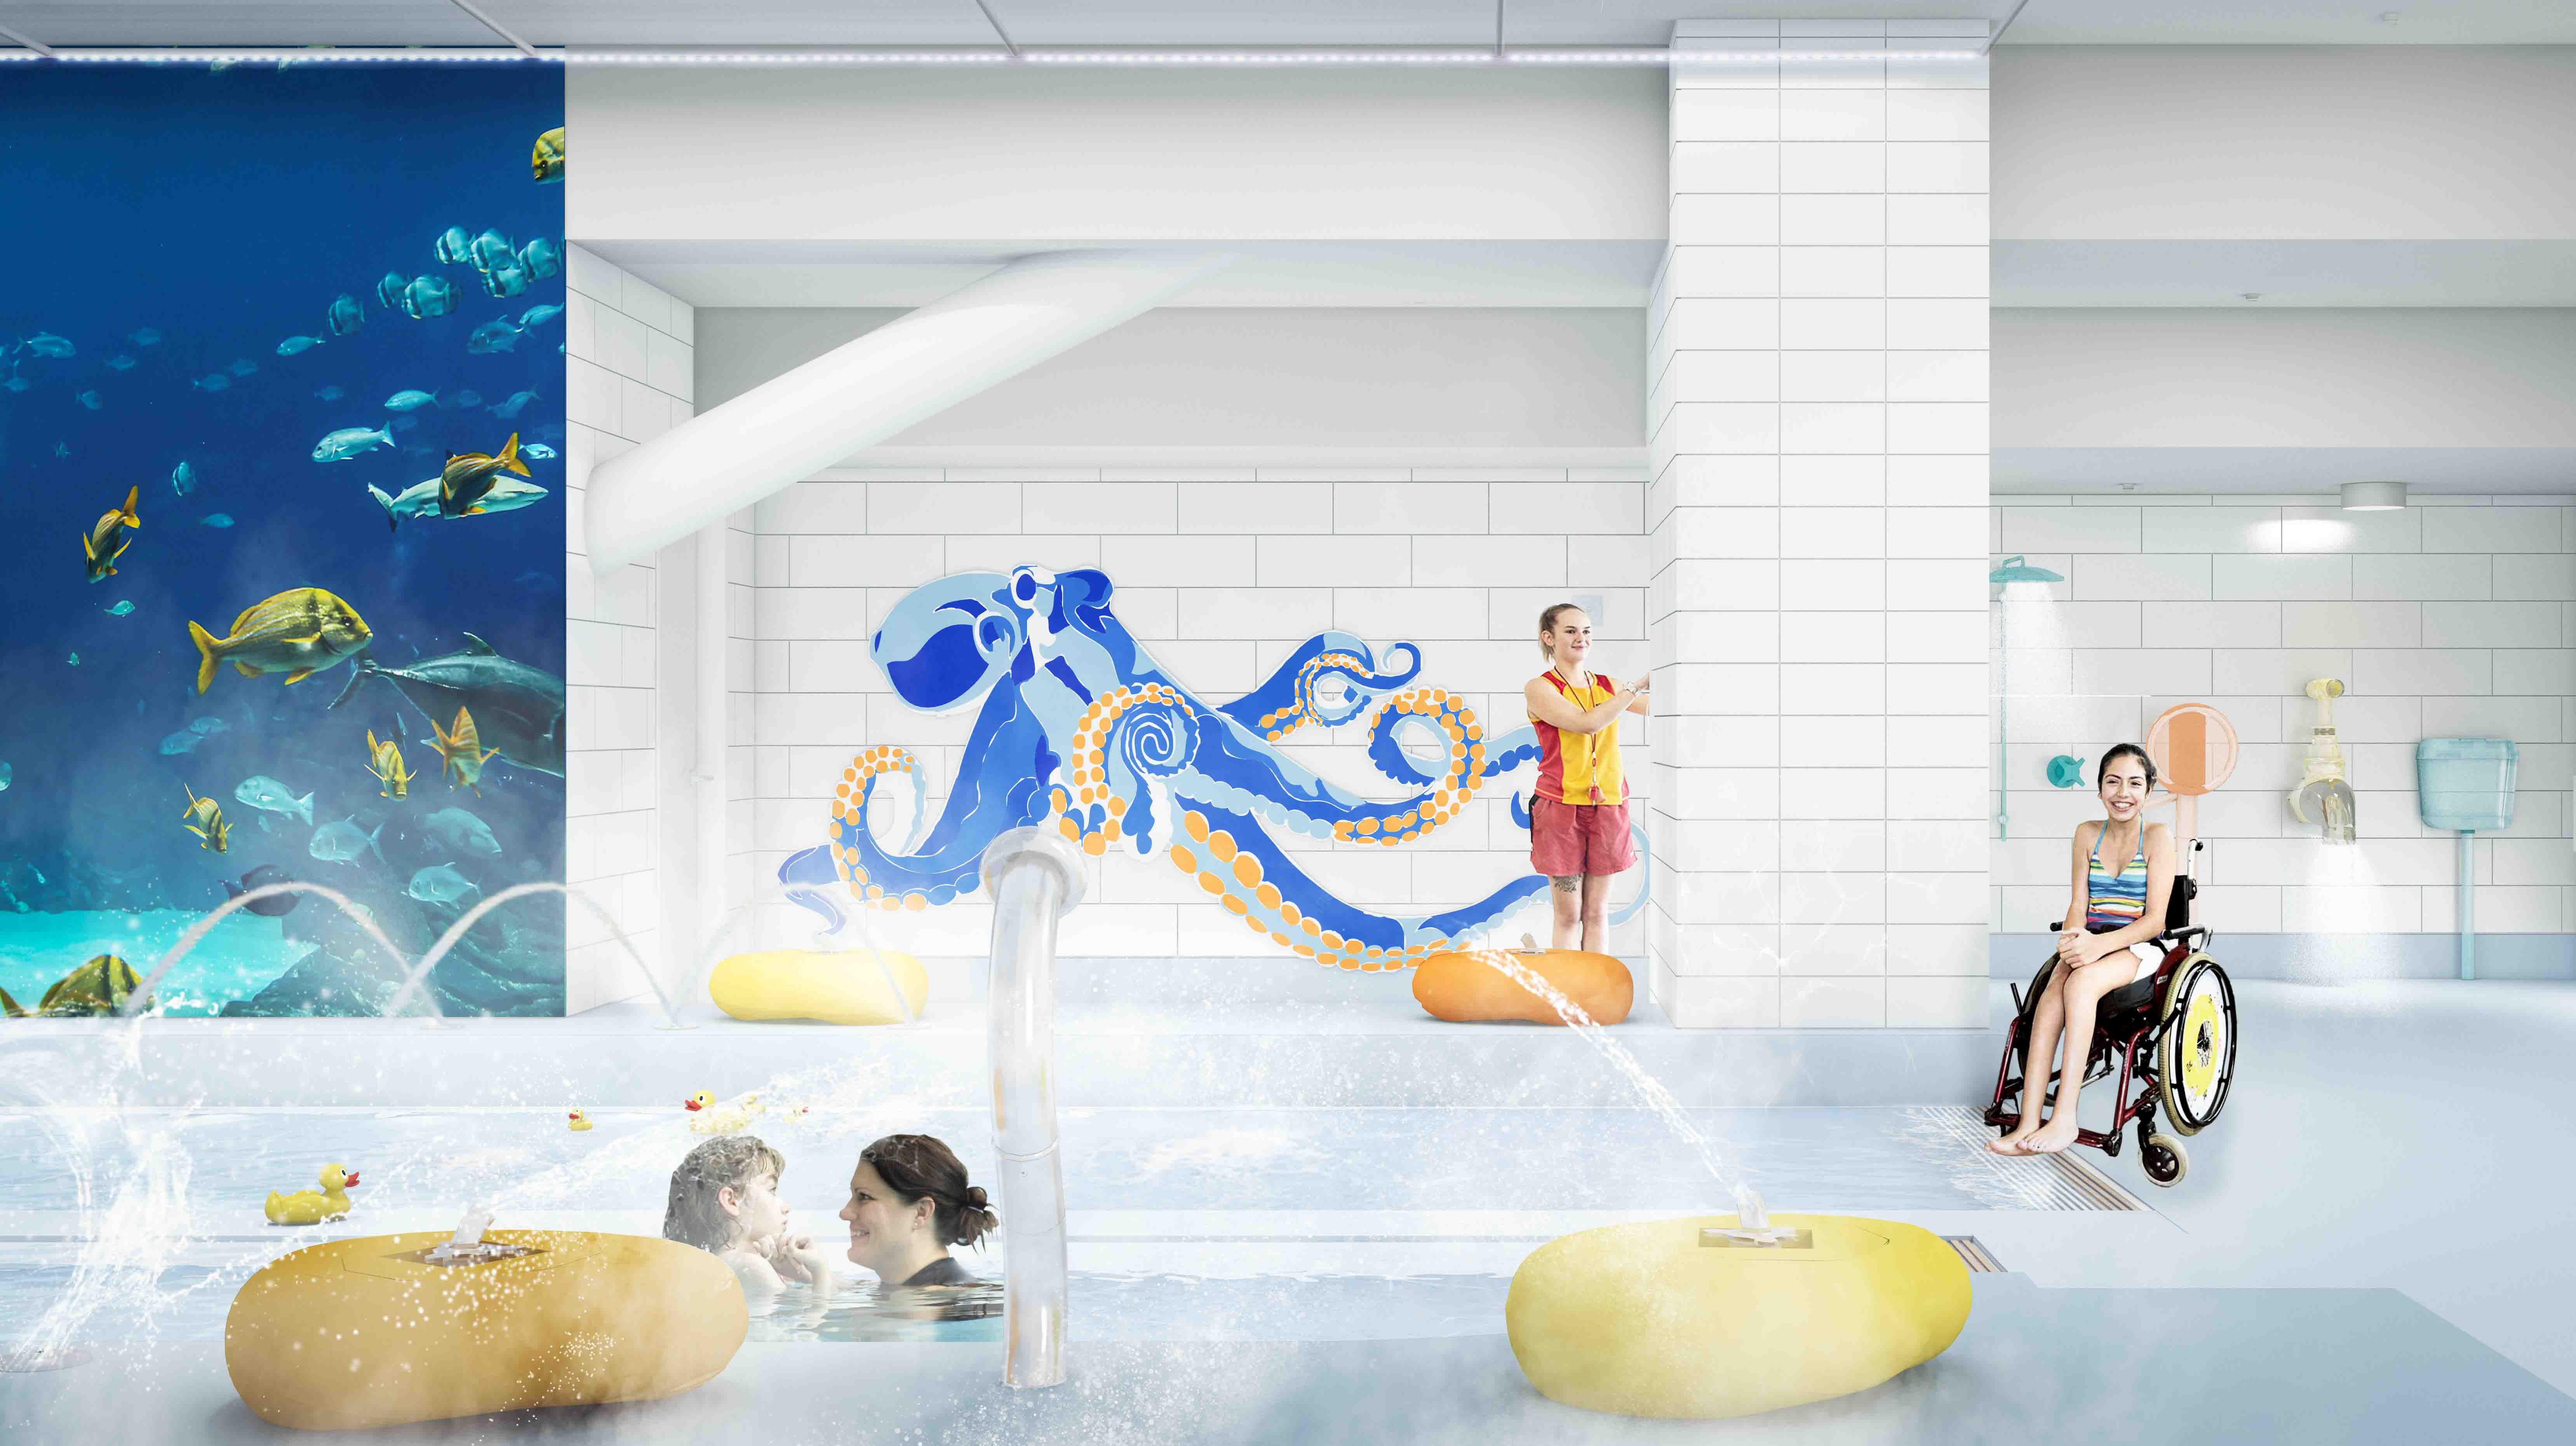 An artist's impression of the aquatic sensory experience area. Image: Newsline / CCC